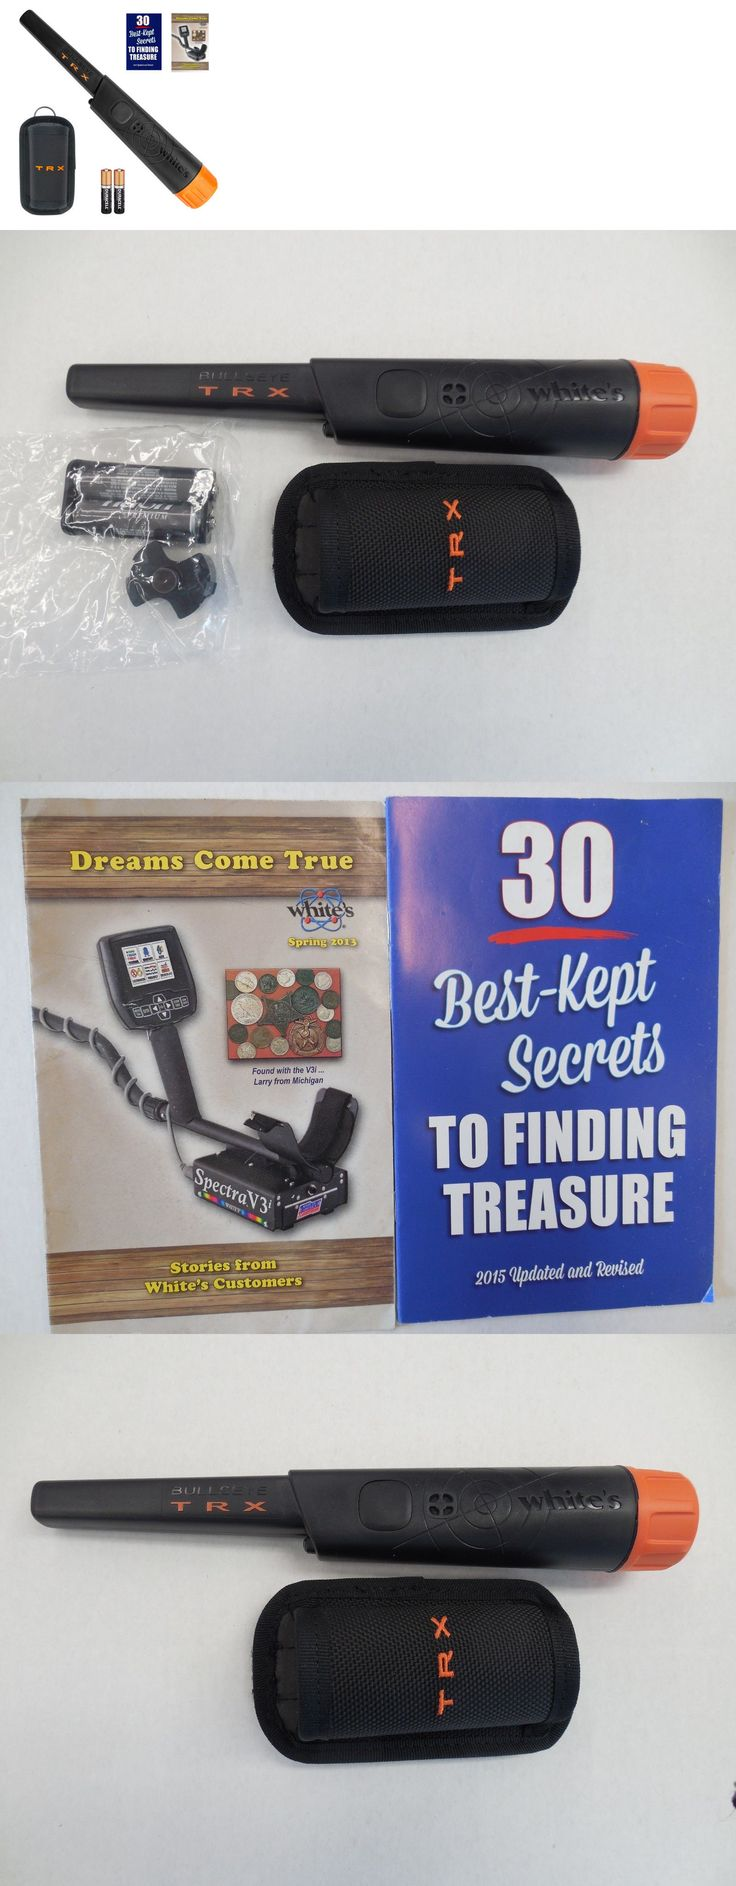 Metal Detector Accessories: Whites Trx Pinpointer W Free Holster, 30 Best Kept Secrets, And Dreams Come True -> BUY IT NOW ONLY: $149.95 on eBay!